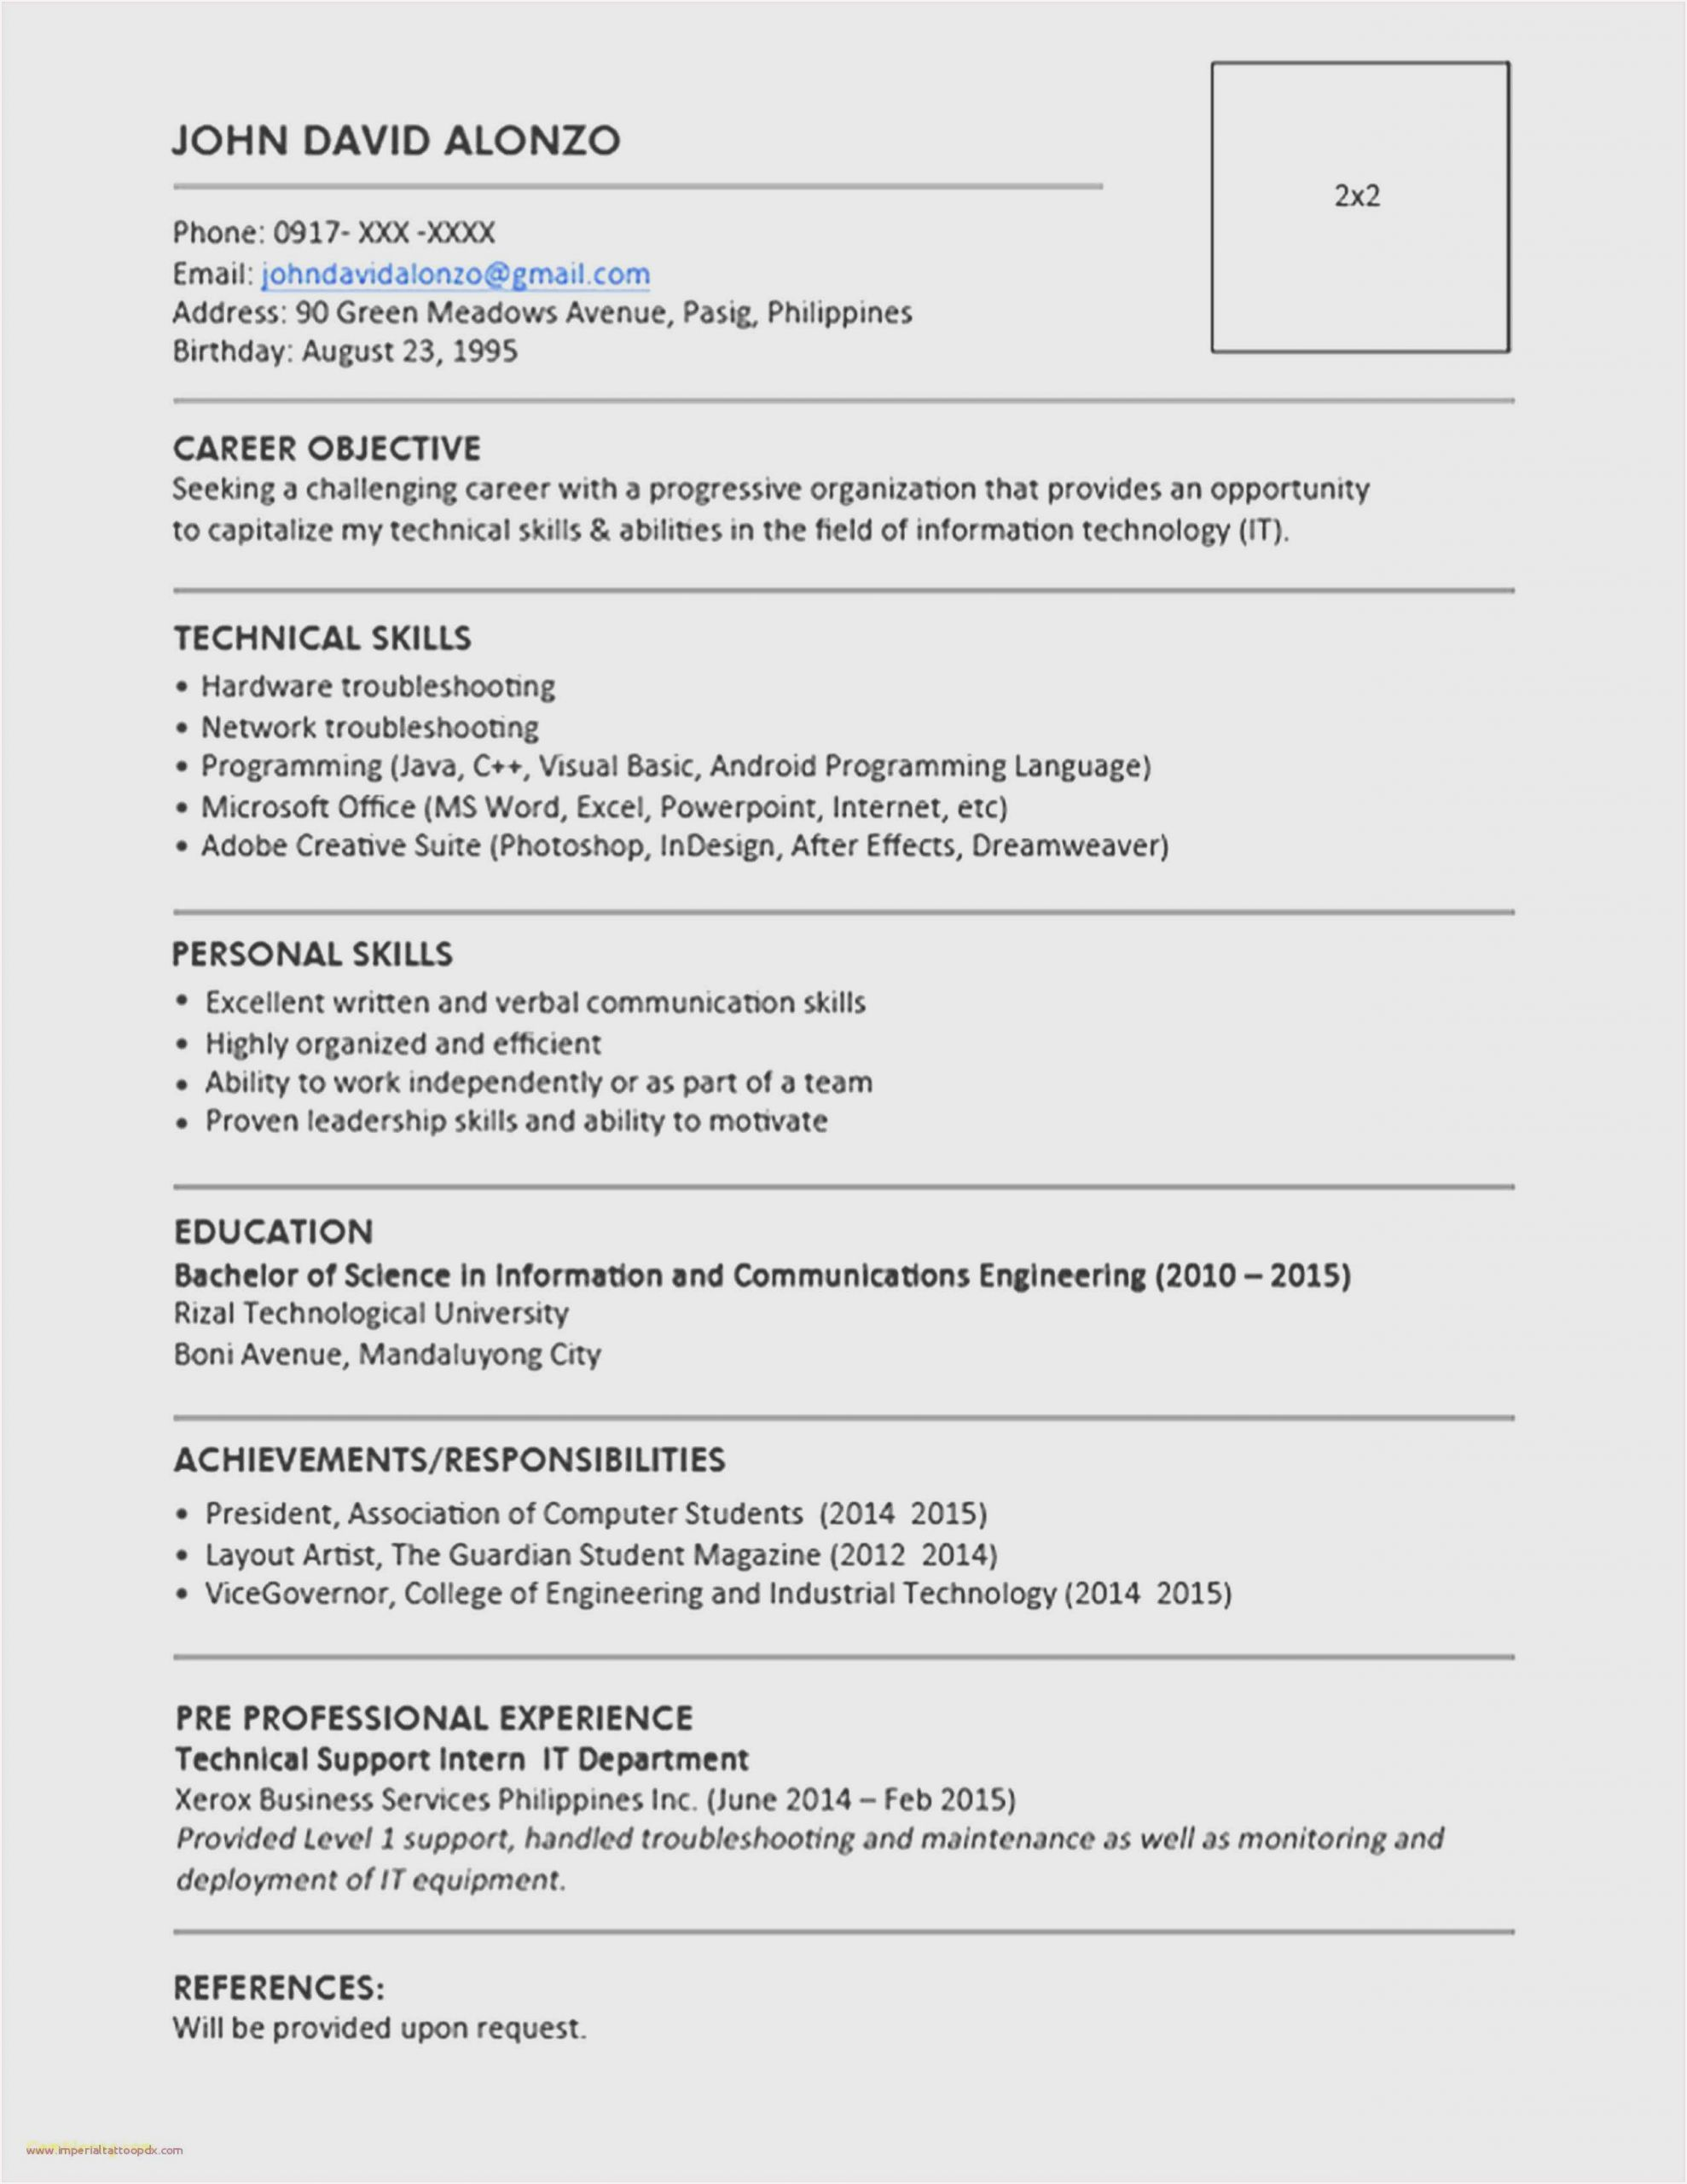 microsoft office word resume templates sample scaled executive summary samples for Resume Microsoft Office Word Resume Templates 2010